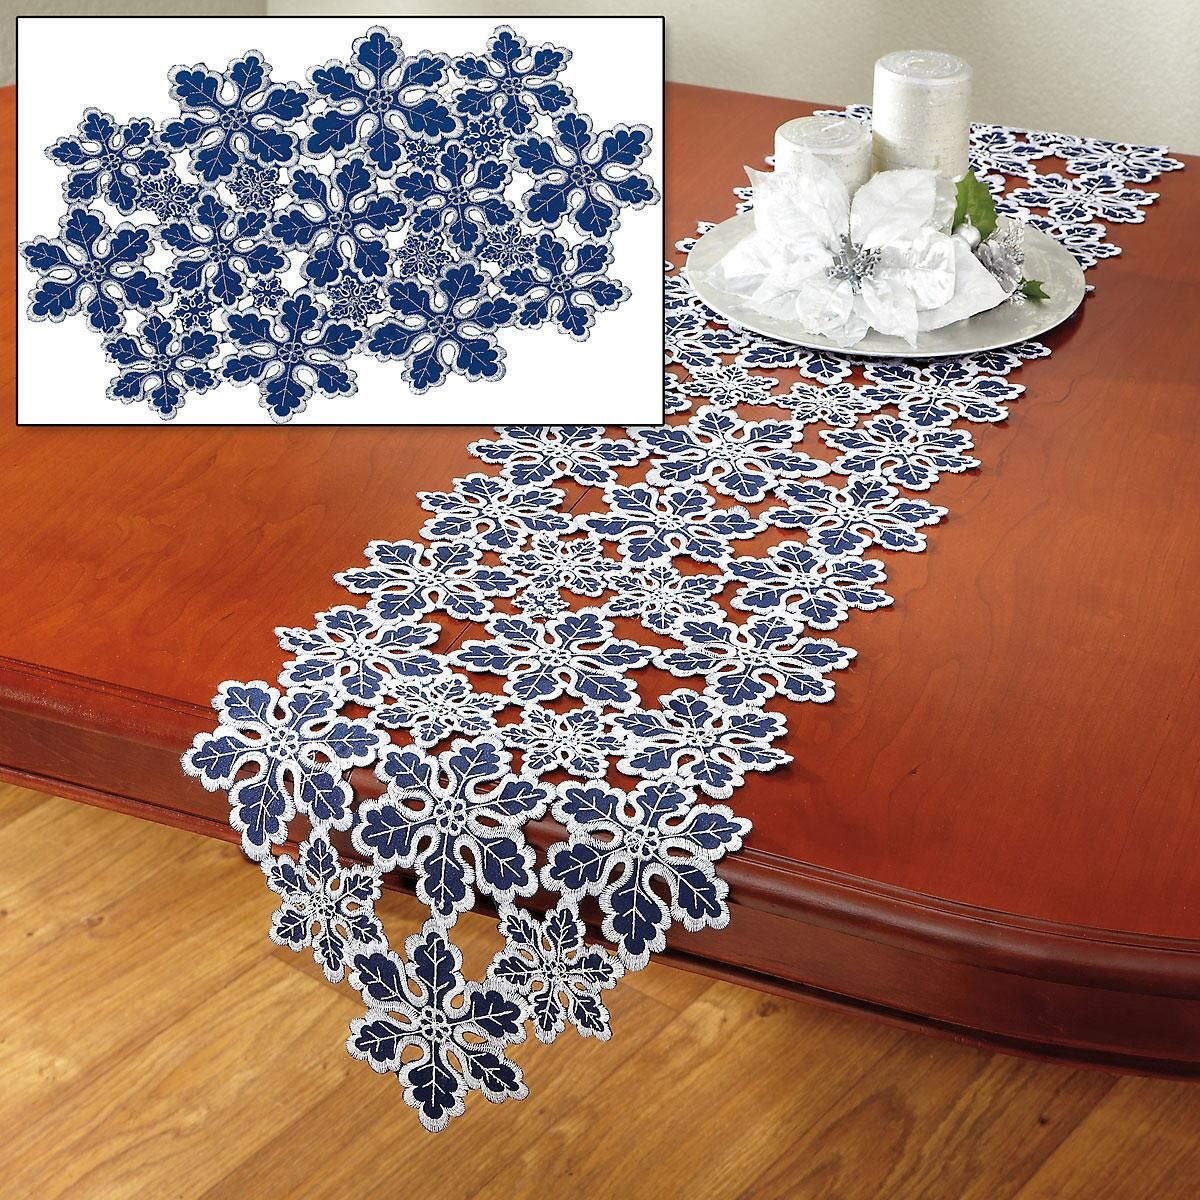 Blue & Silver Snowflakes Table Runner and Placemats